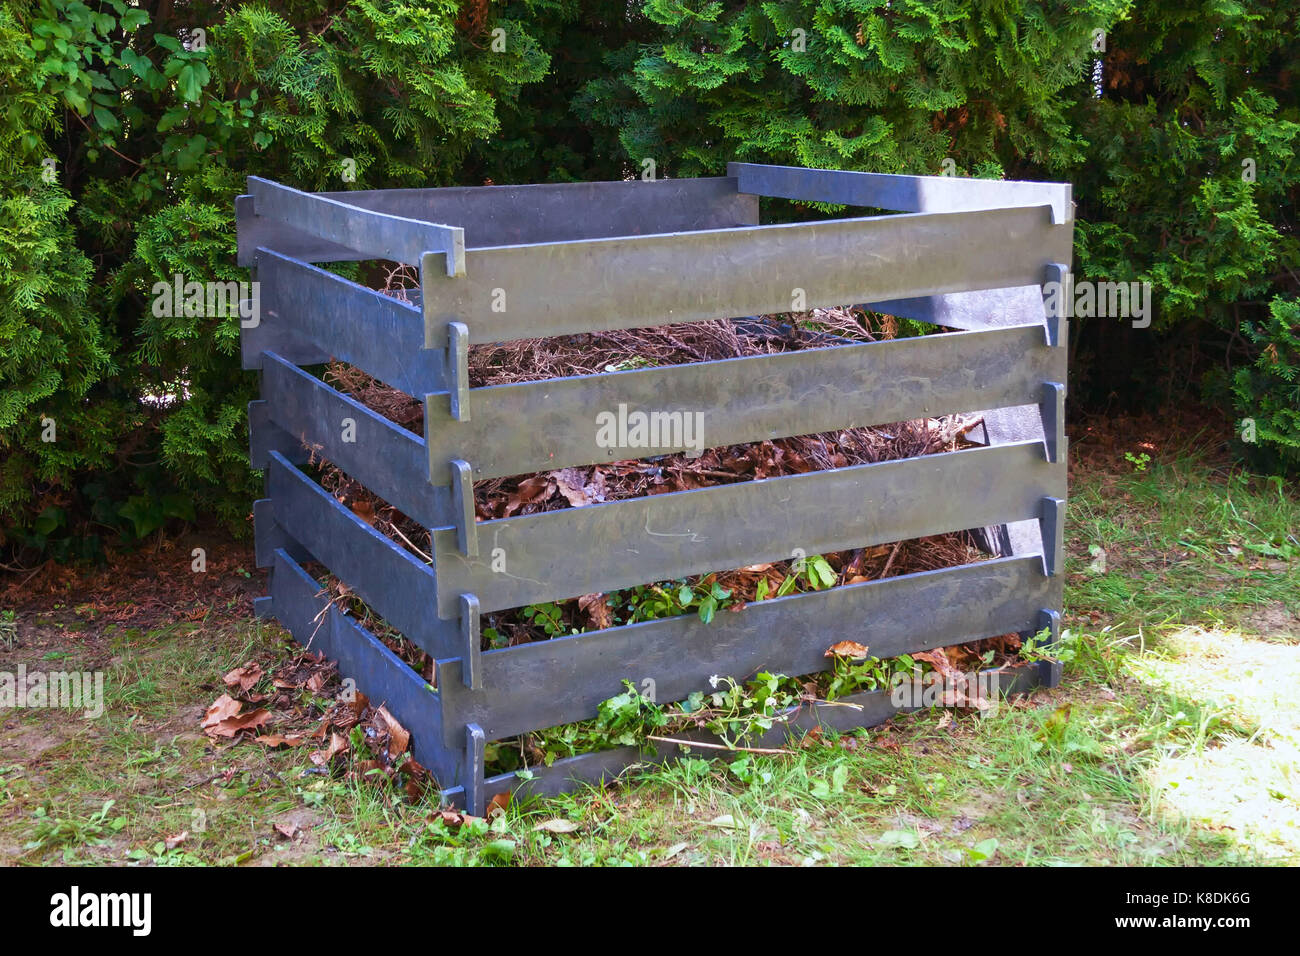 compost container photos & compost container images - alamy